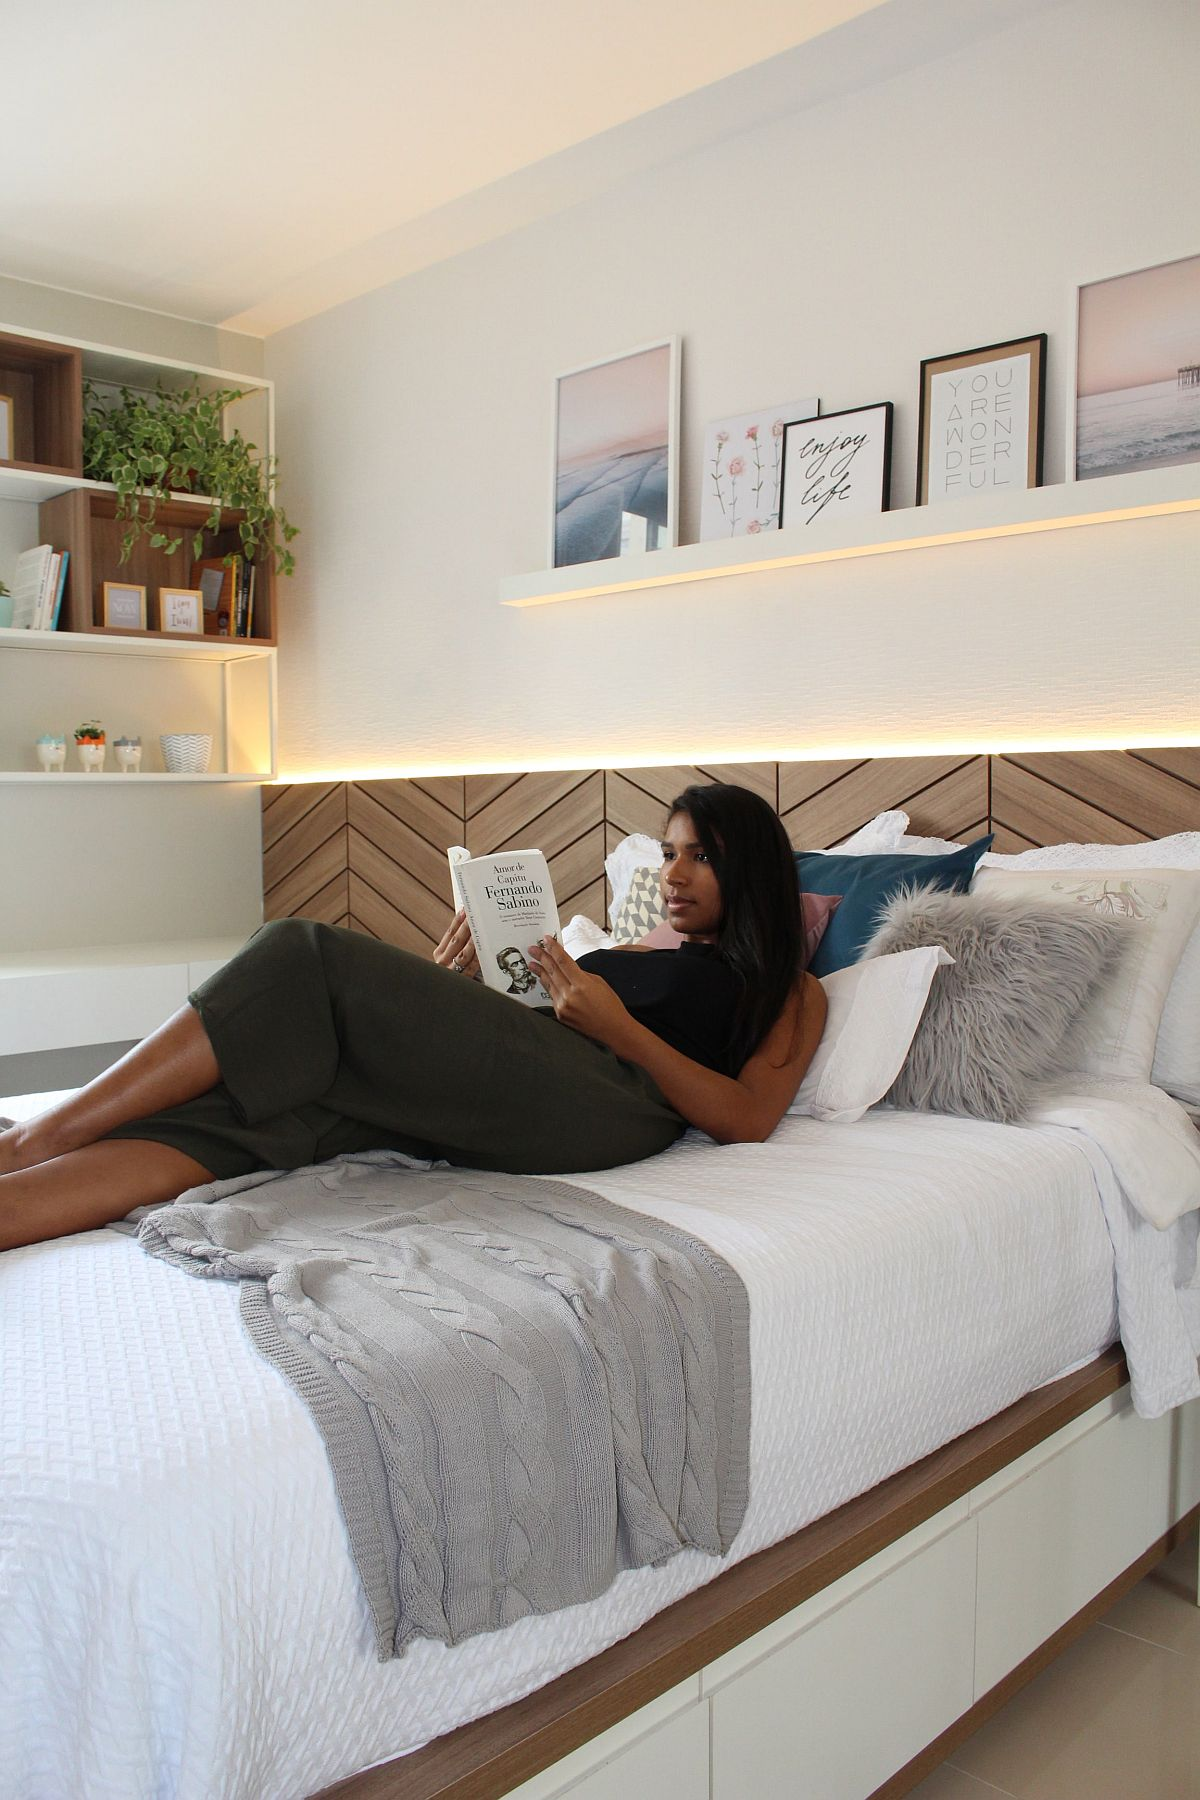 Relaxing and fabulous modern bedroom in wood and white with herringbone pattern headboard and smart storage